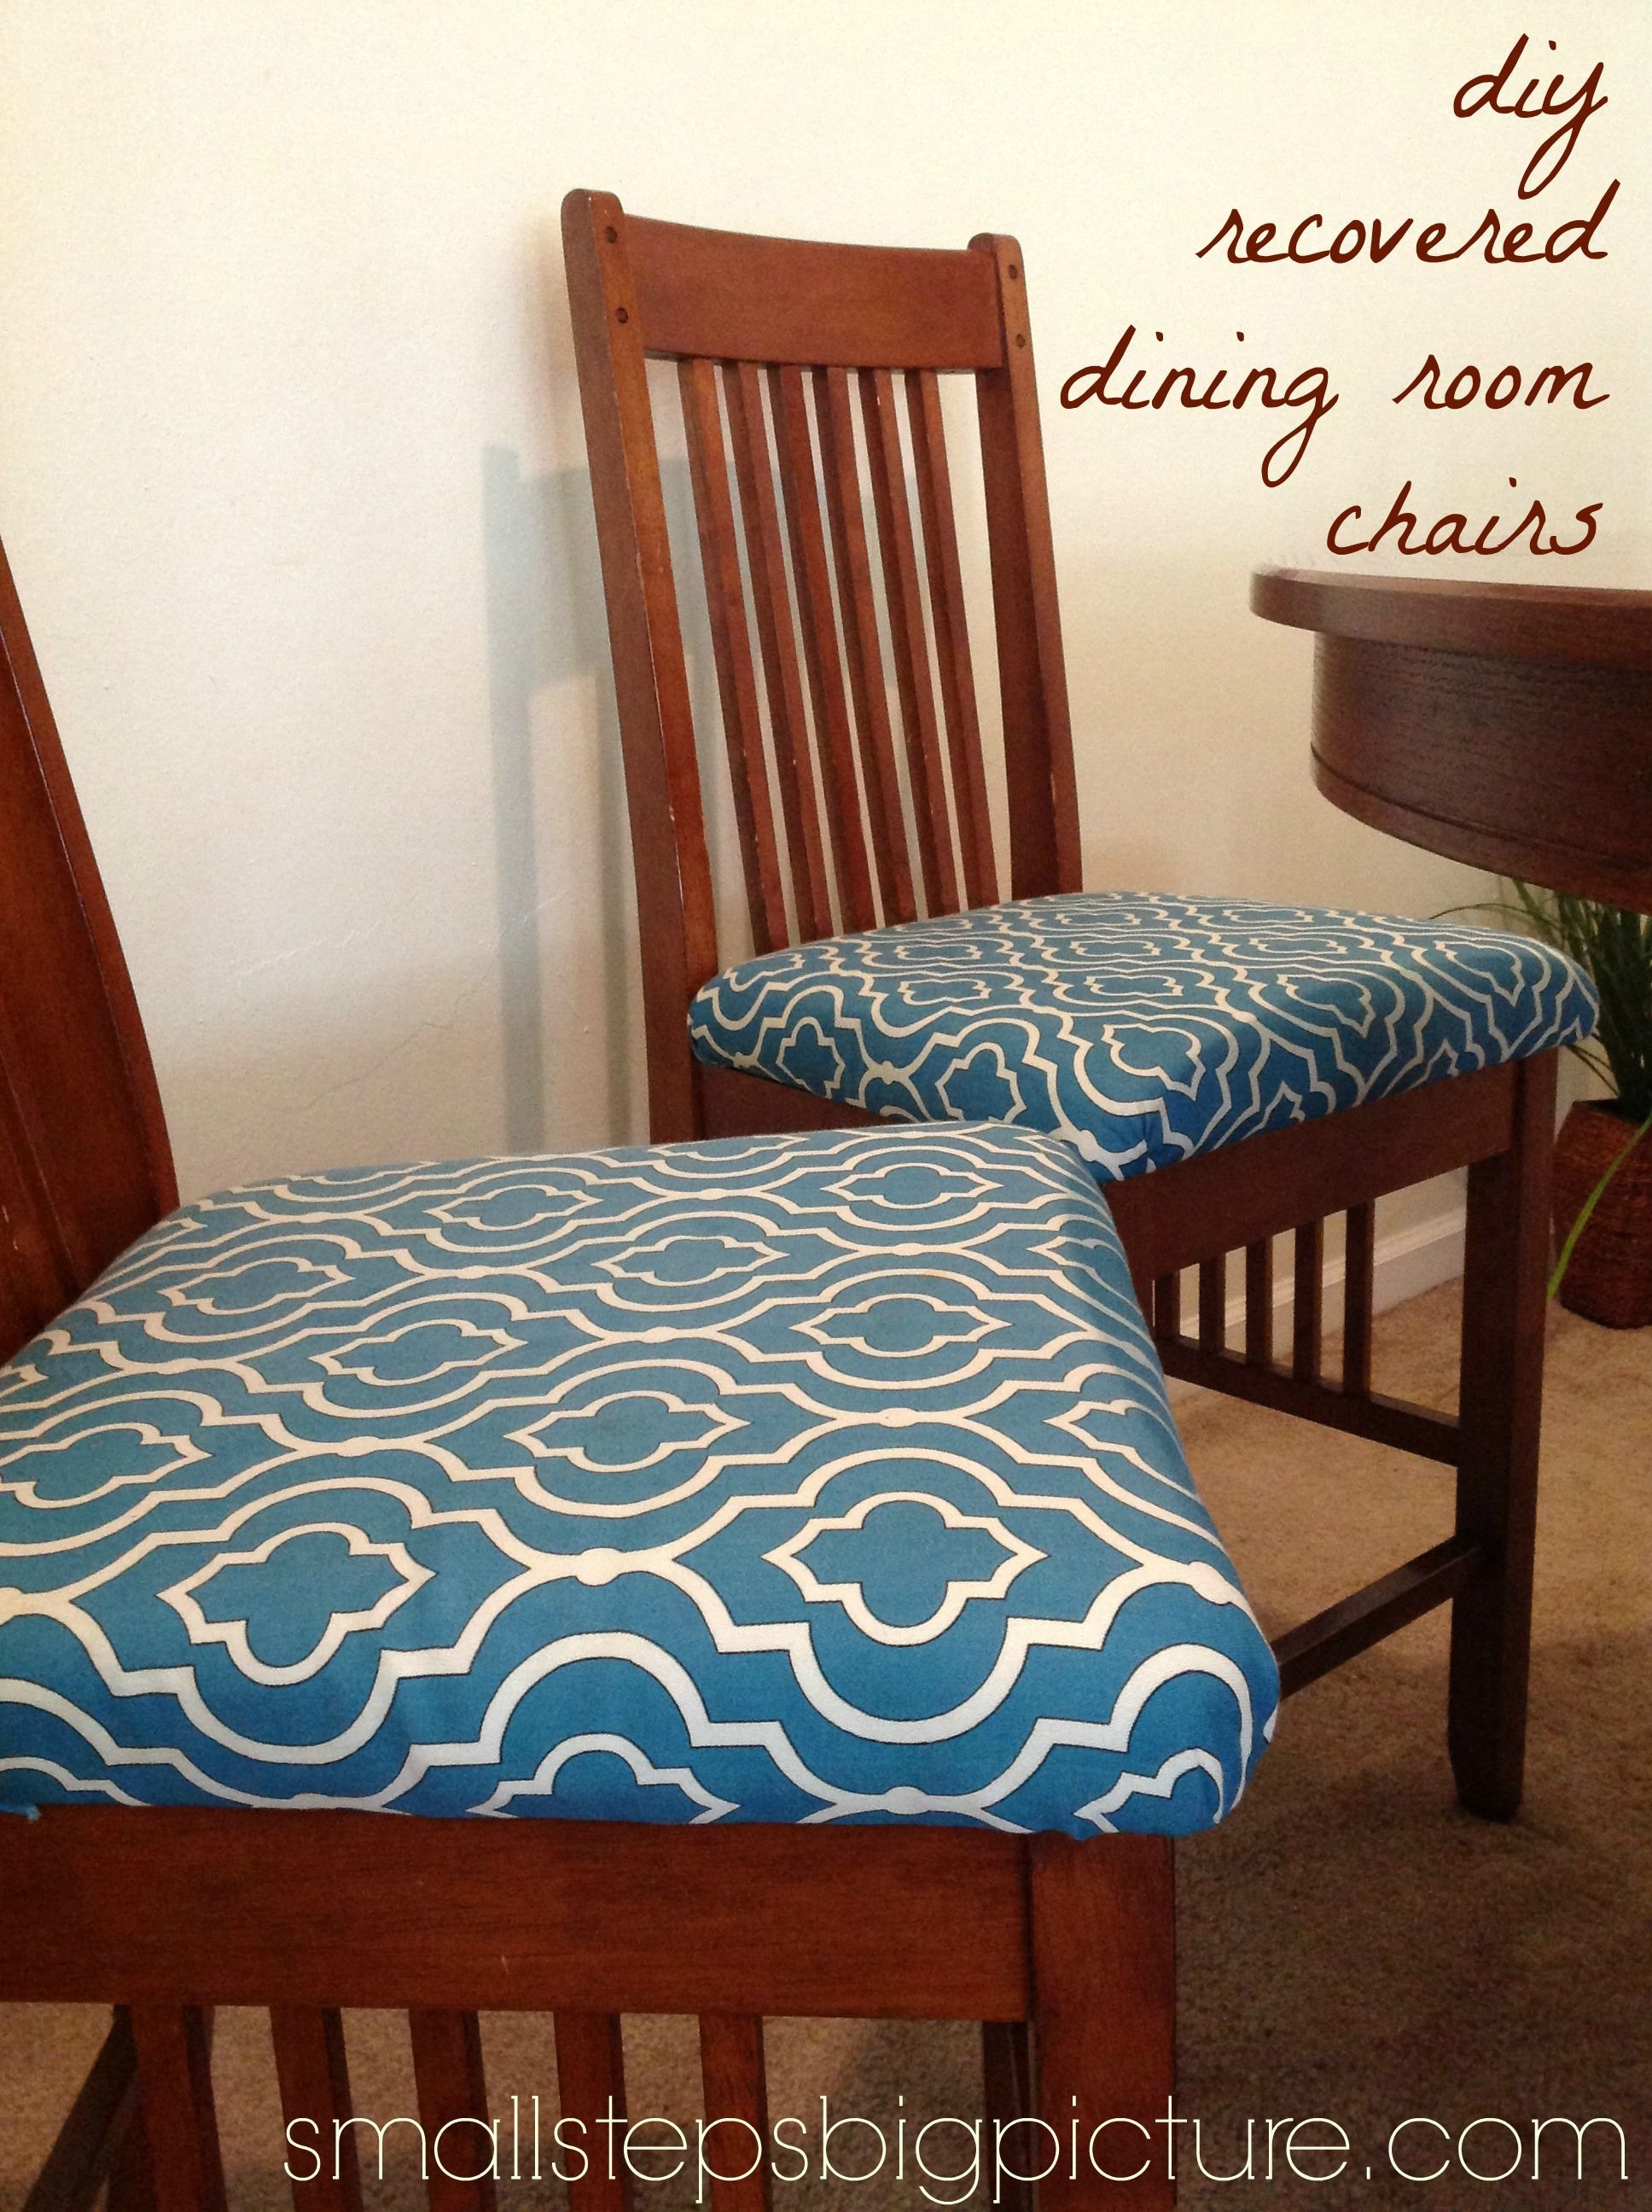 Recovering Dining Room Chair Cushions, New Foam For Dining Room Chairs